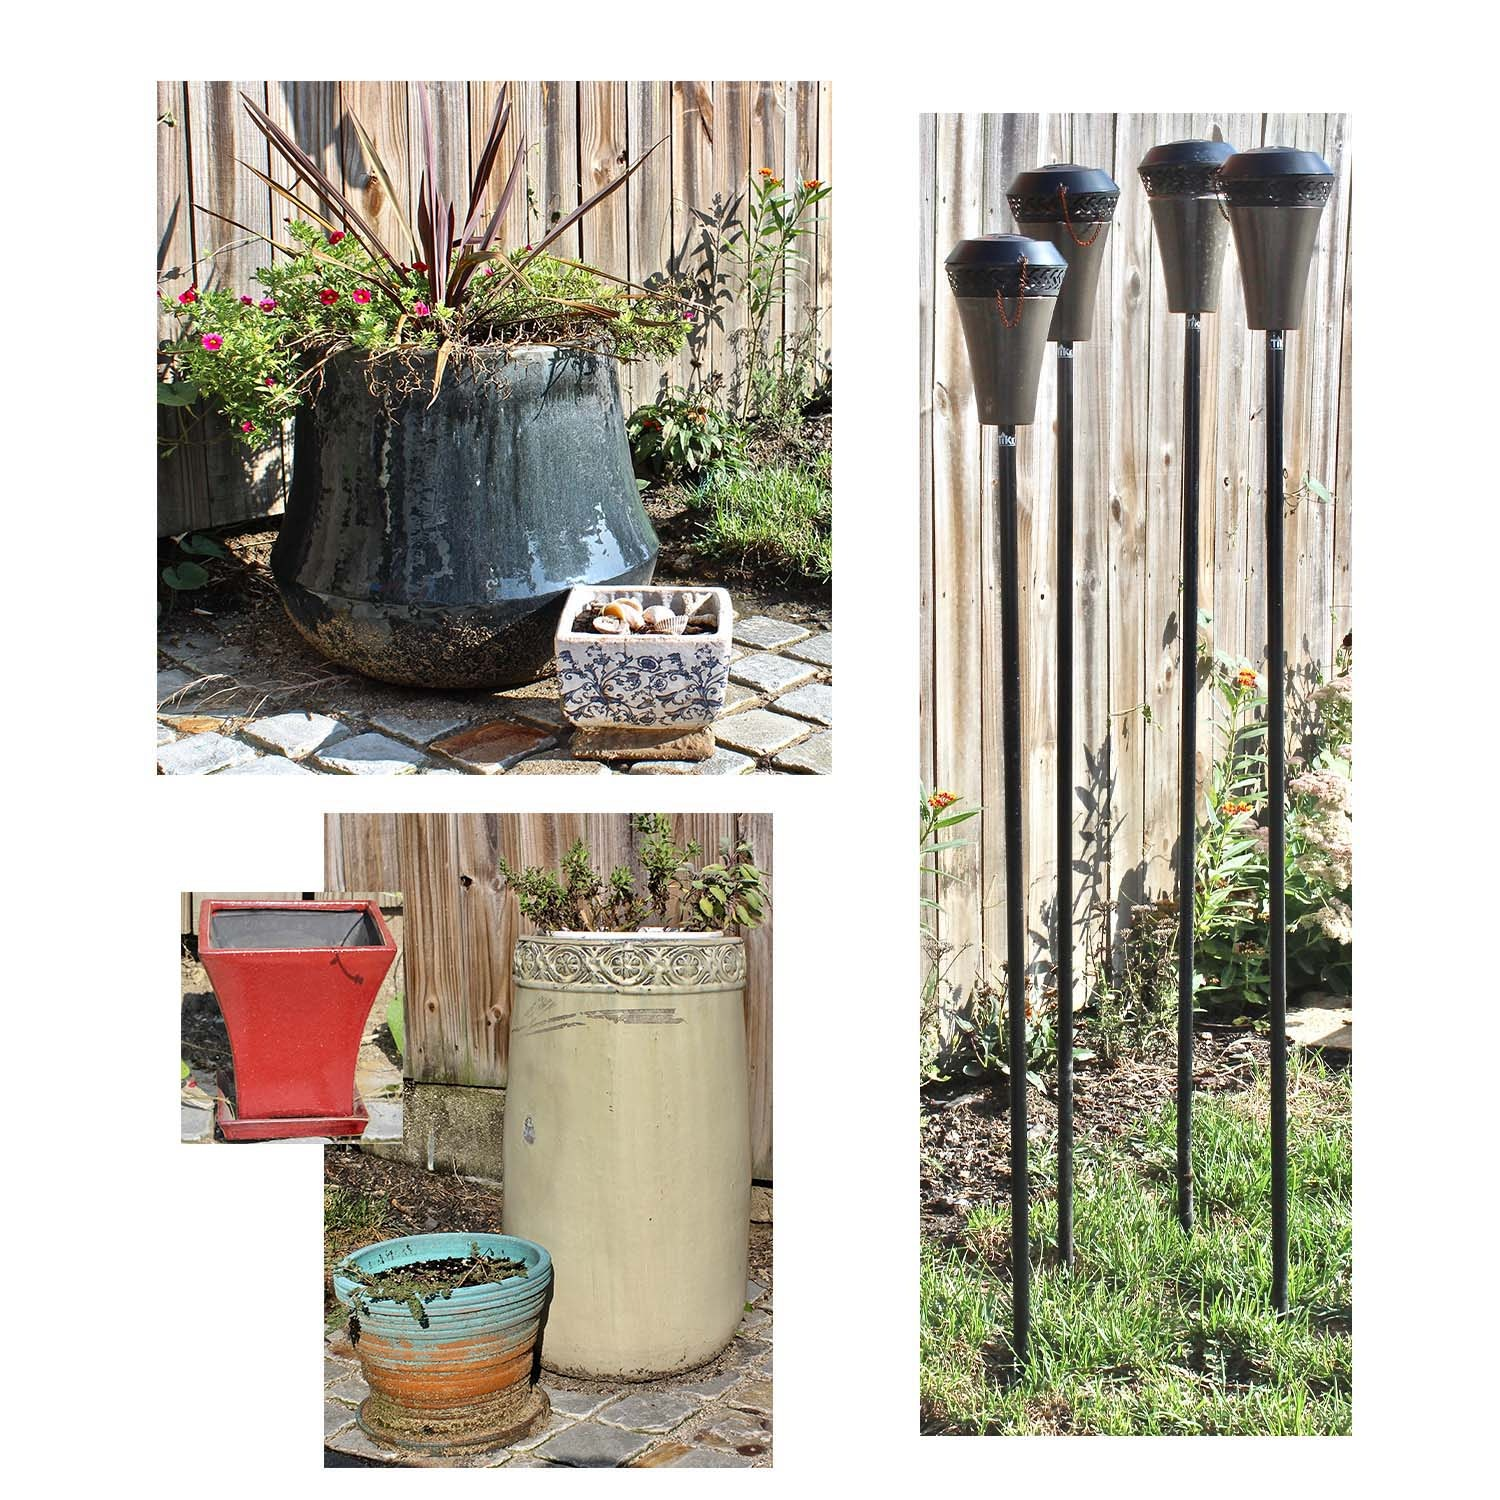 Ceramic Planters and Tiki Torches